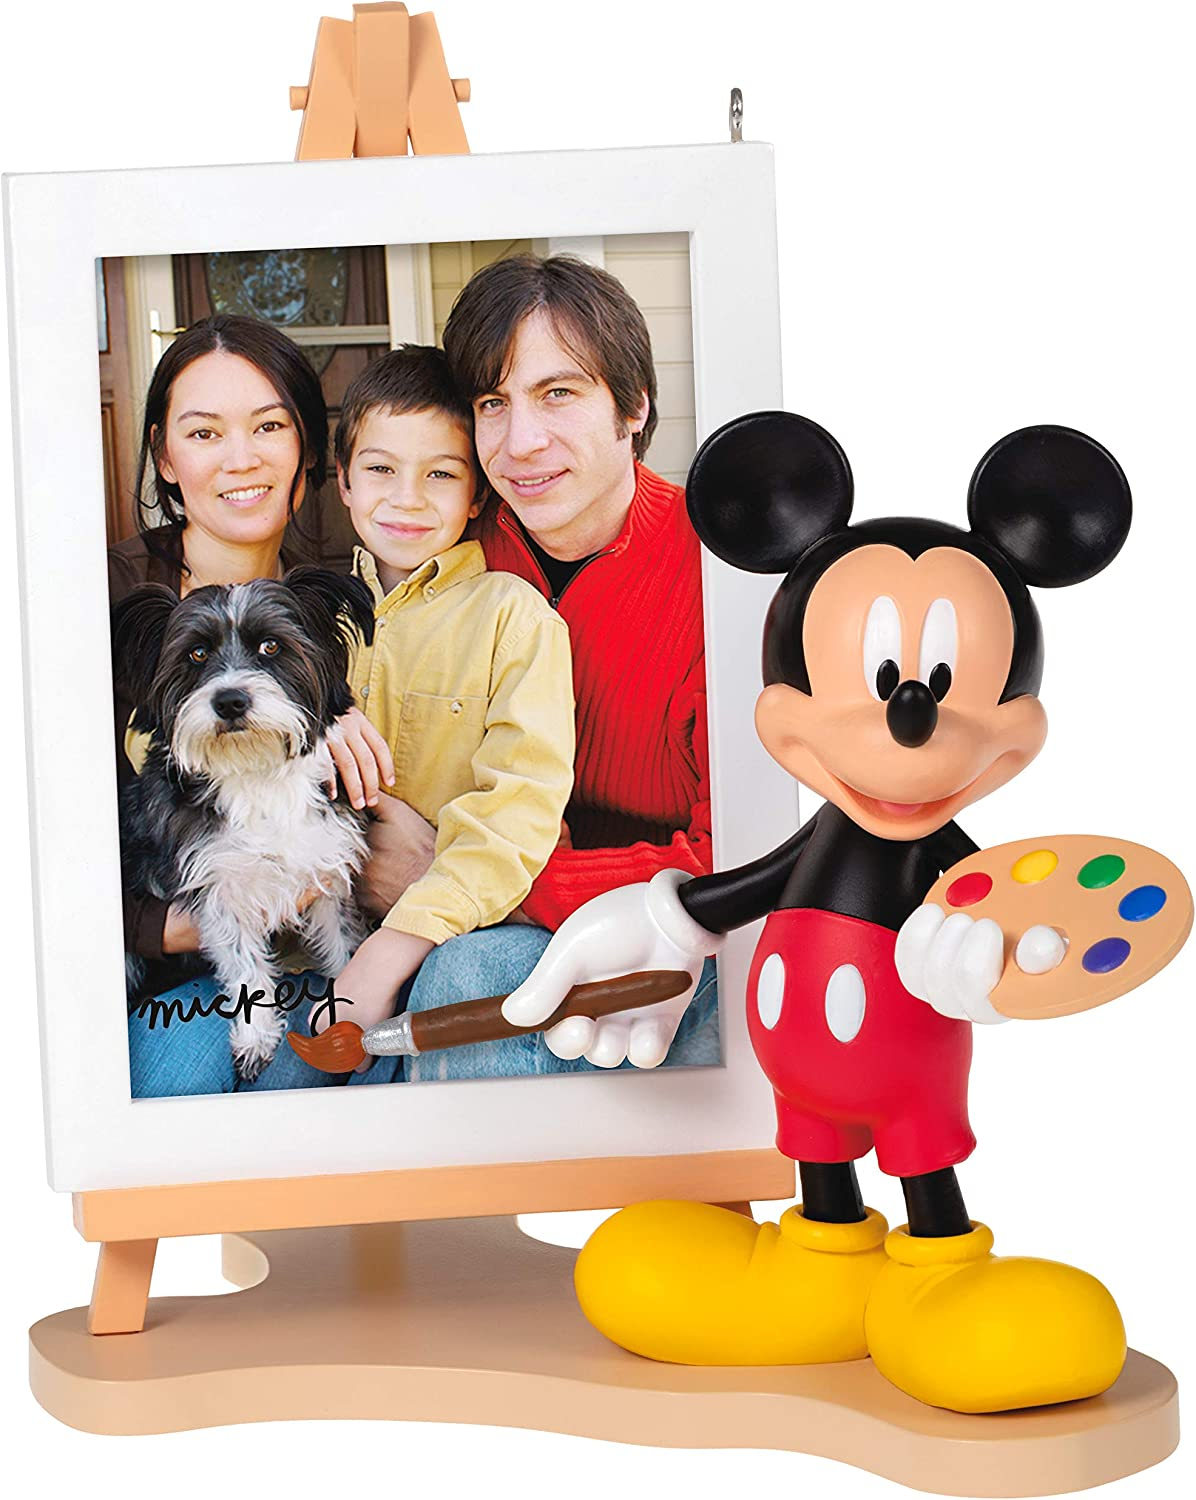 Hallmark Keepsake Ornament 2020 Disney, Mickey Picture Perfect Photo Frame